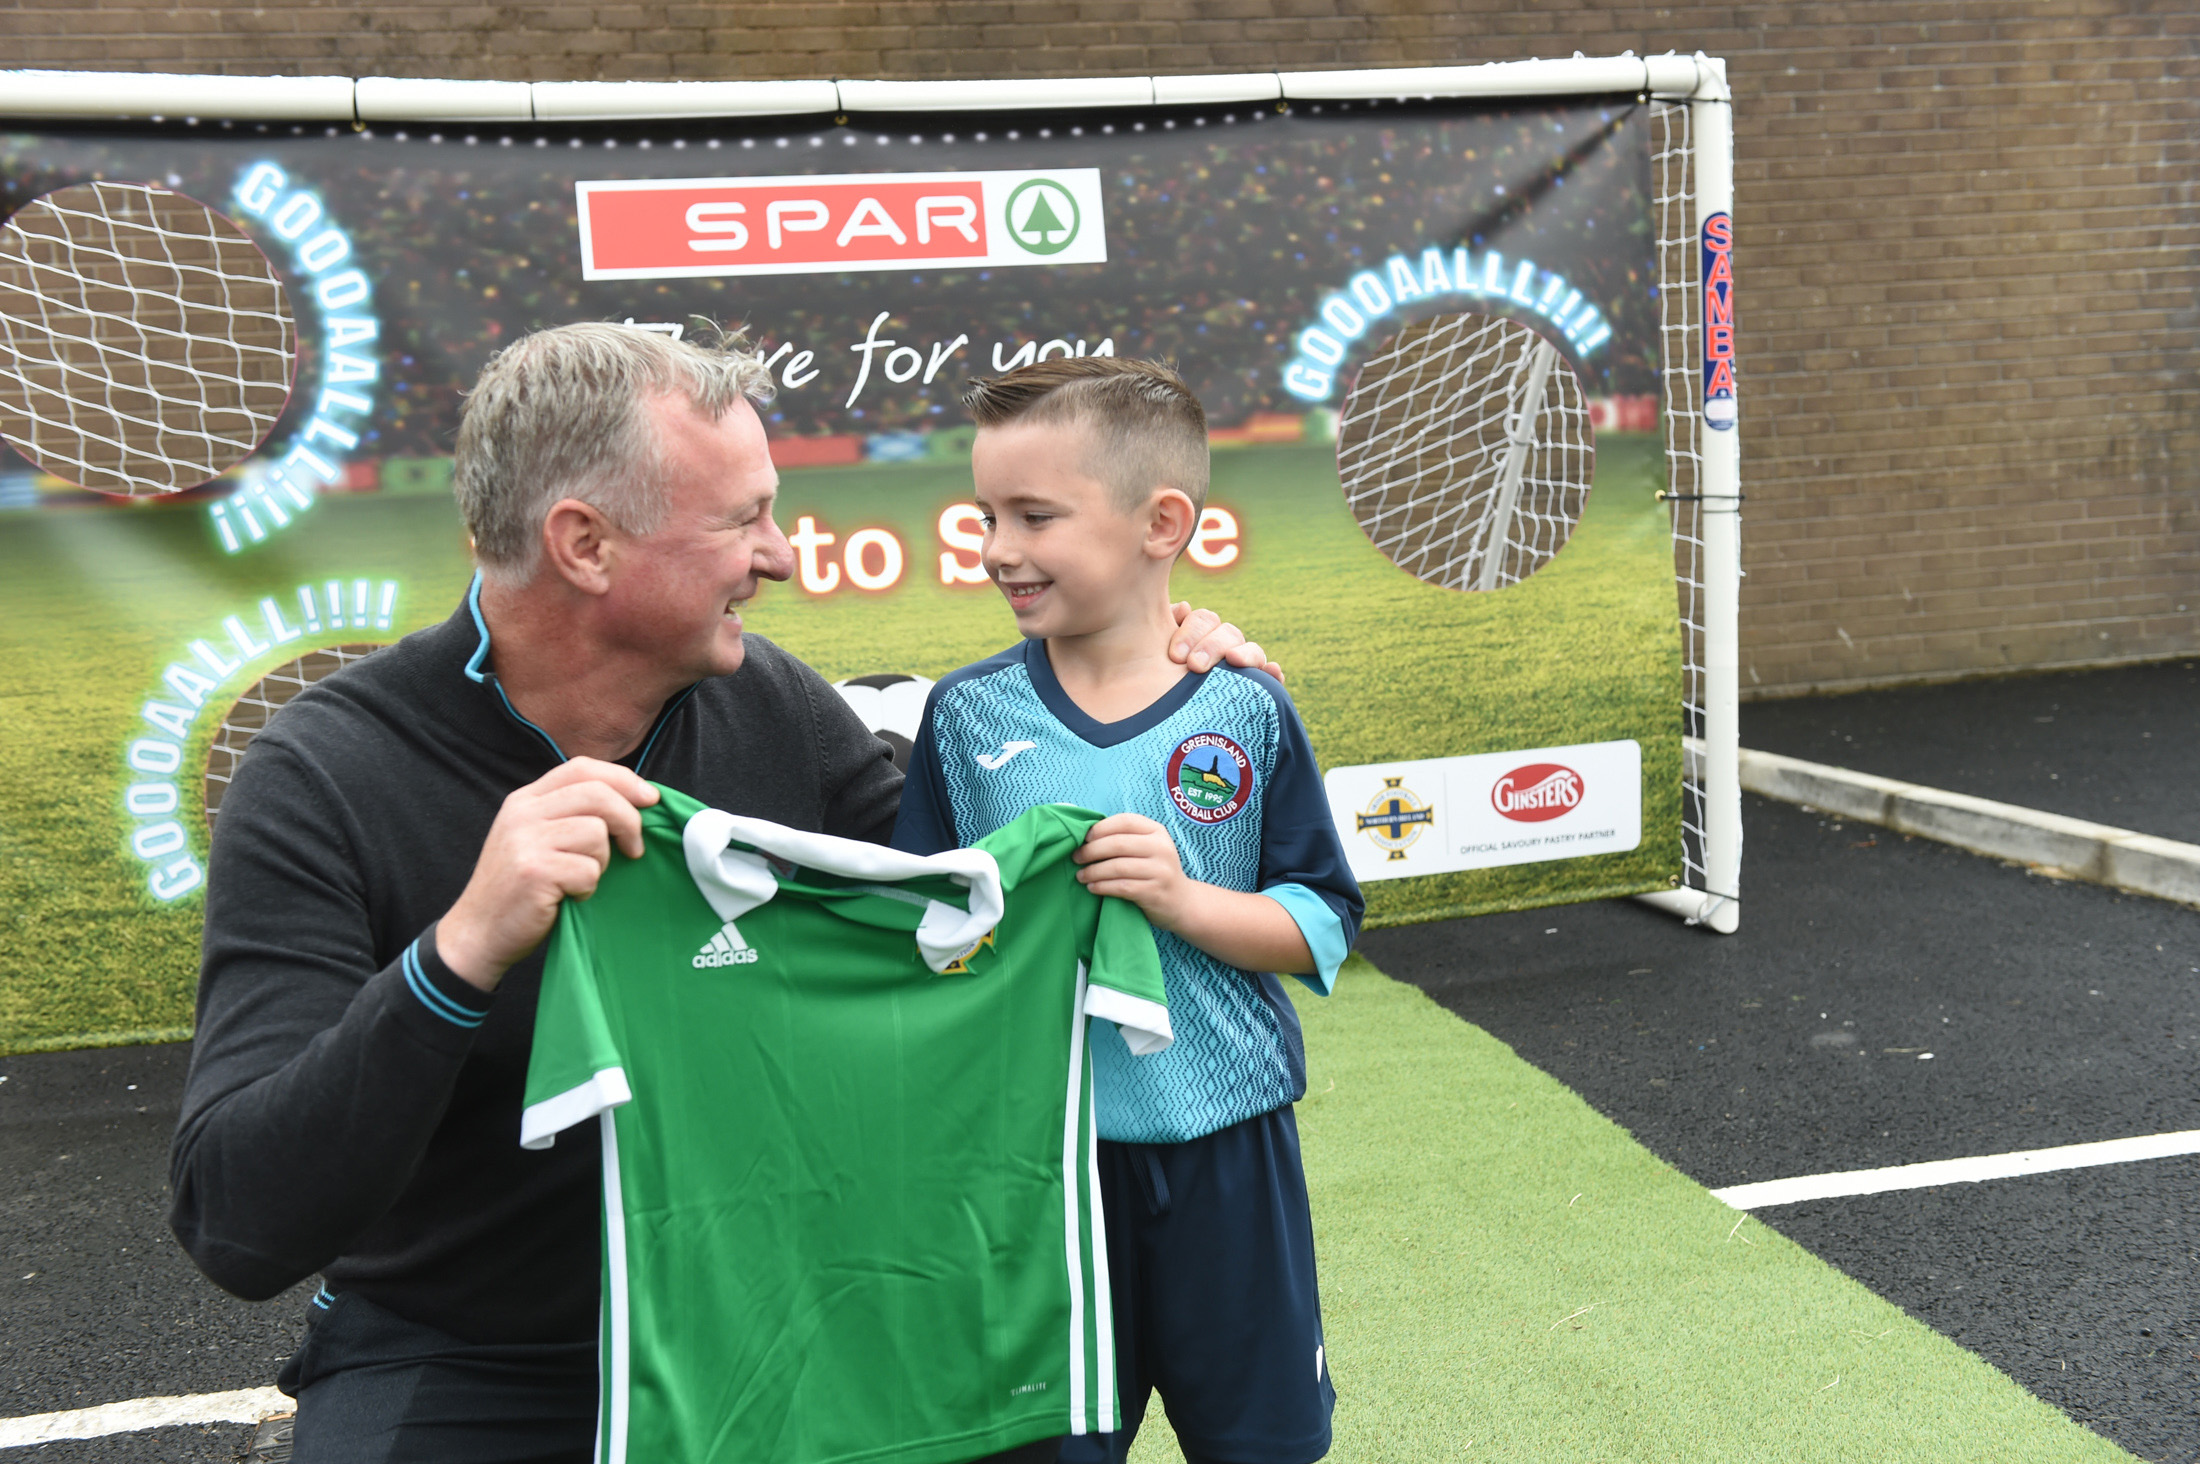 SPAR Fortfield hosts Ginster's Penalty Shootout with Michael O'Neill